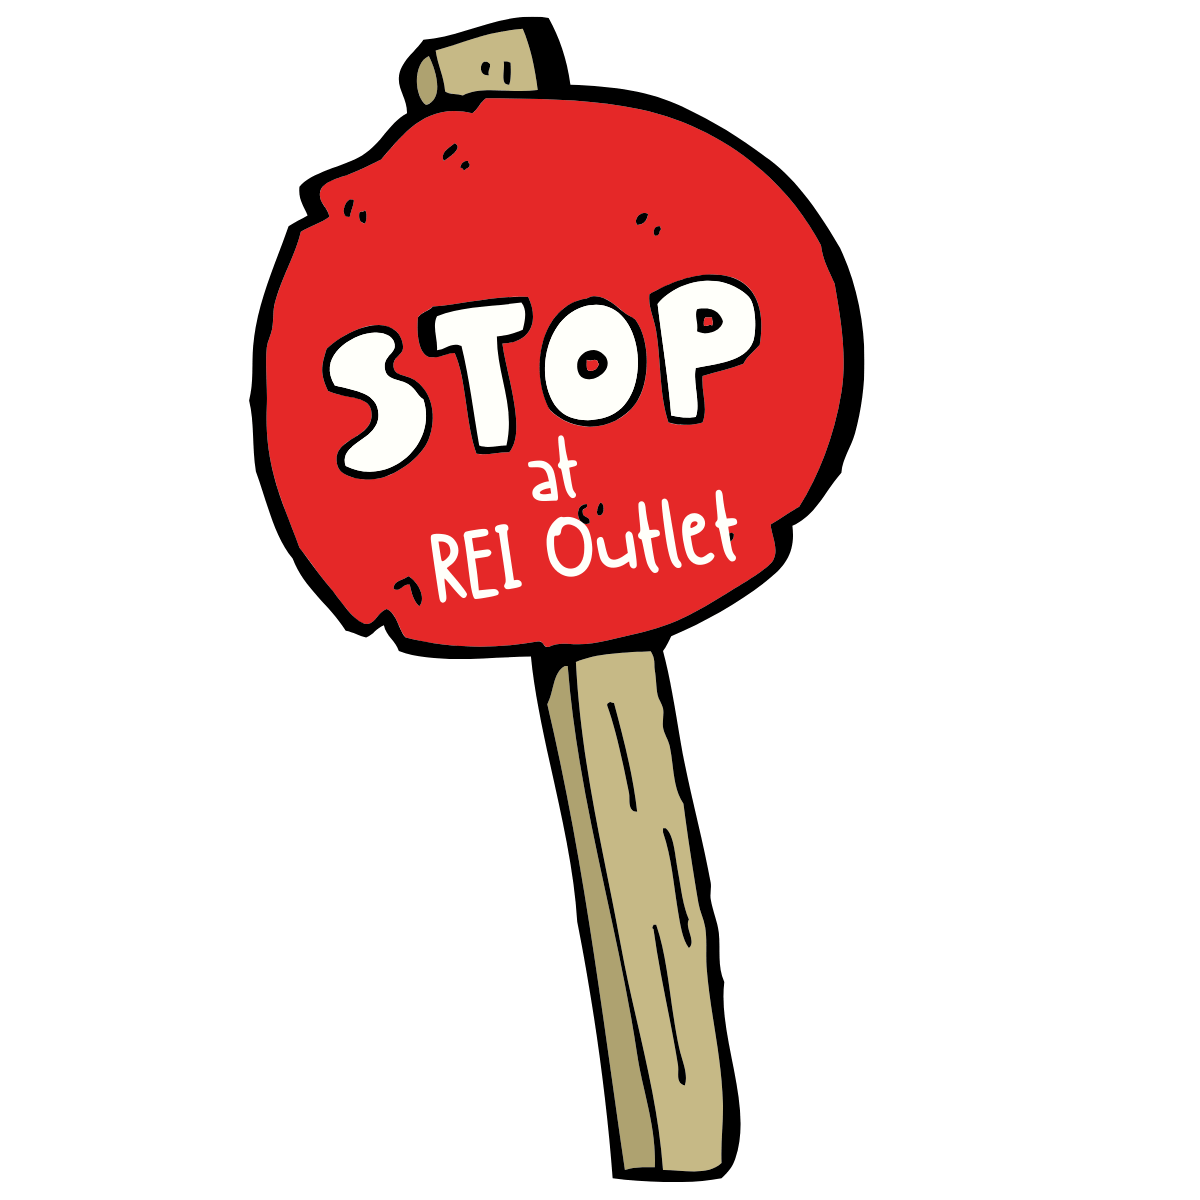 REI Red Stop Sign Without THE